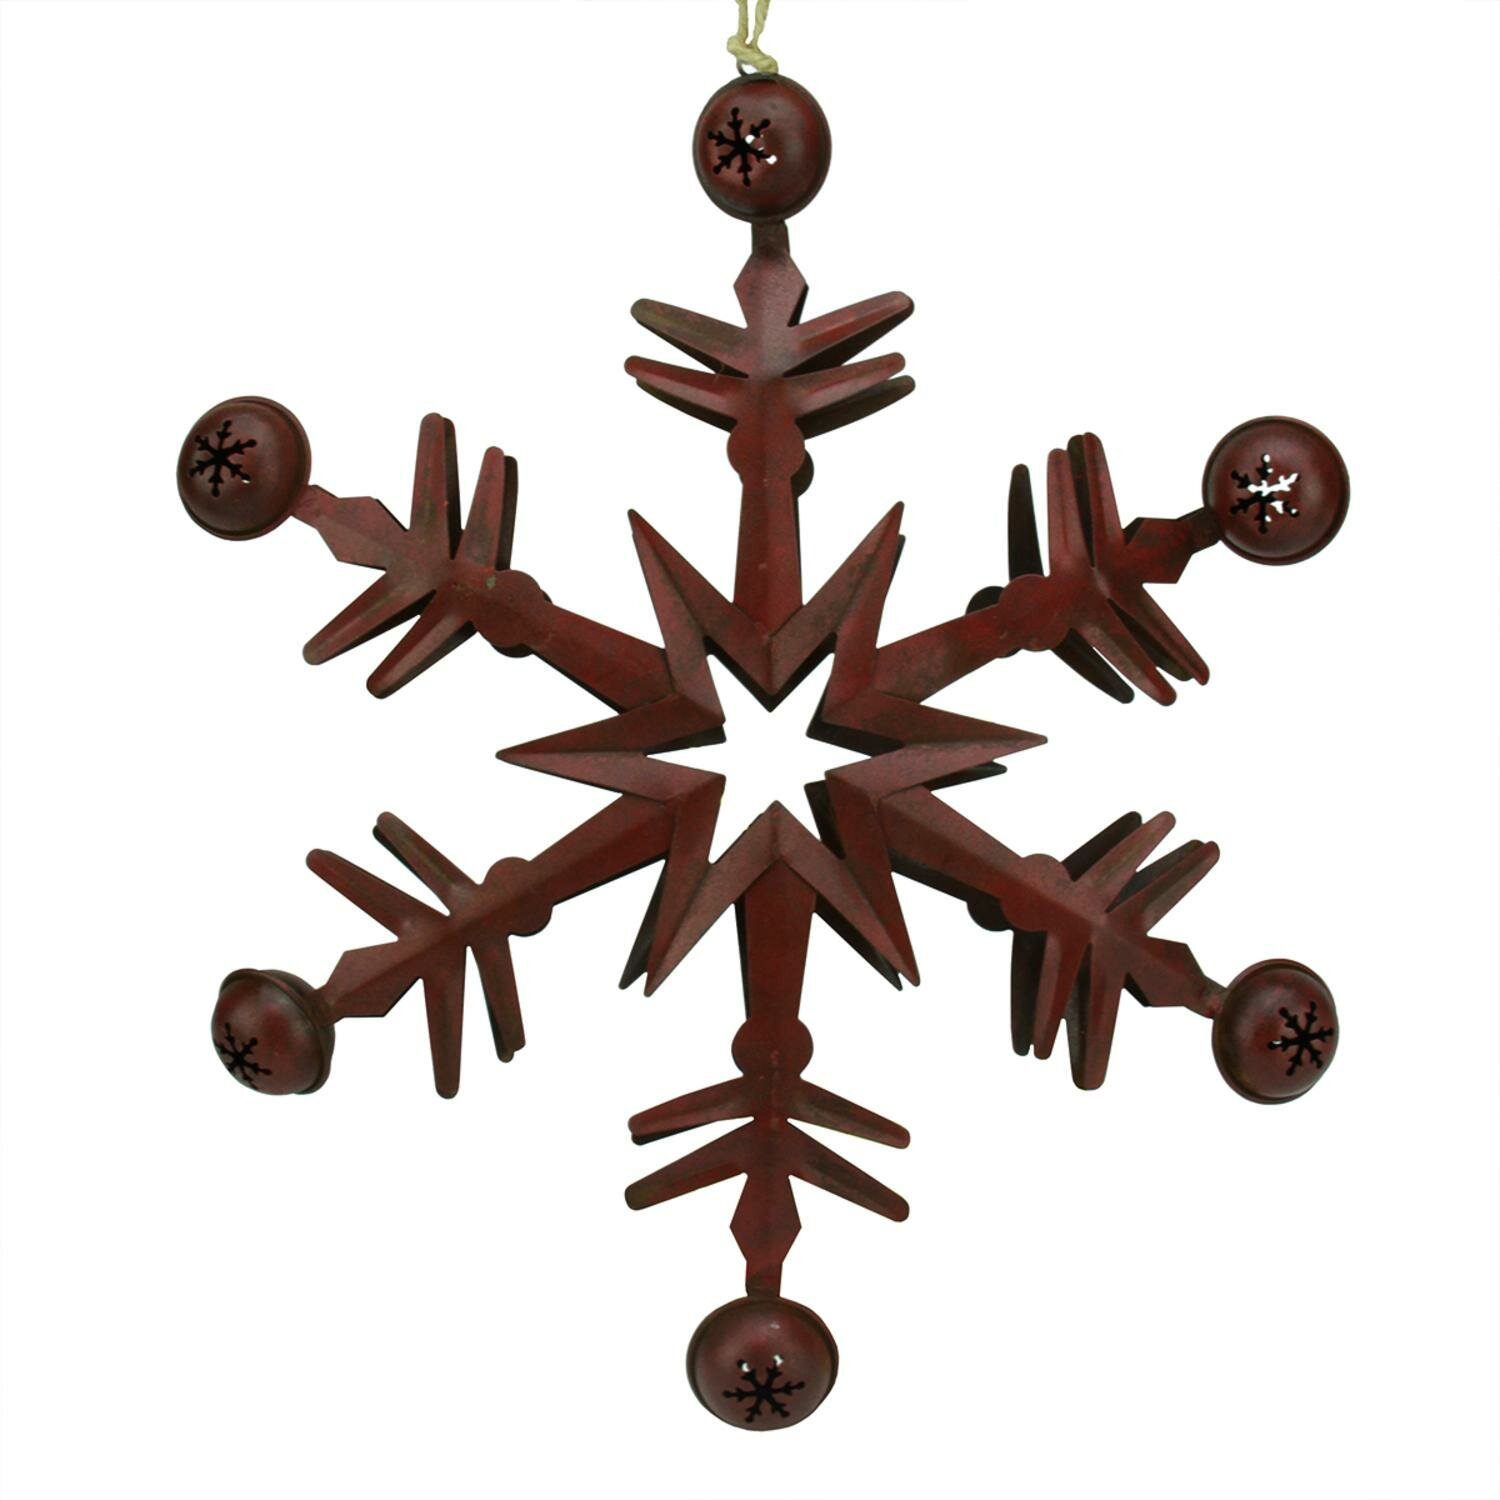 Tori Home Country Cabin 6 Point Metal Christmas Star Ornament With Jingle Bells Wayfair